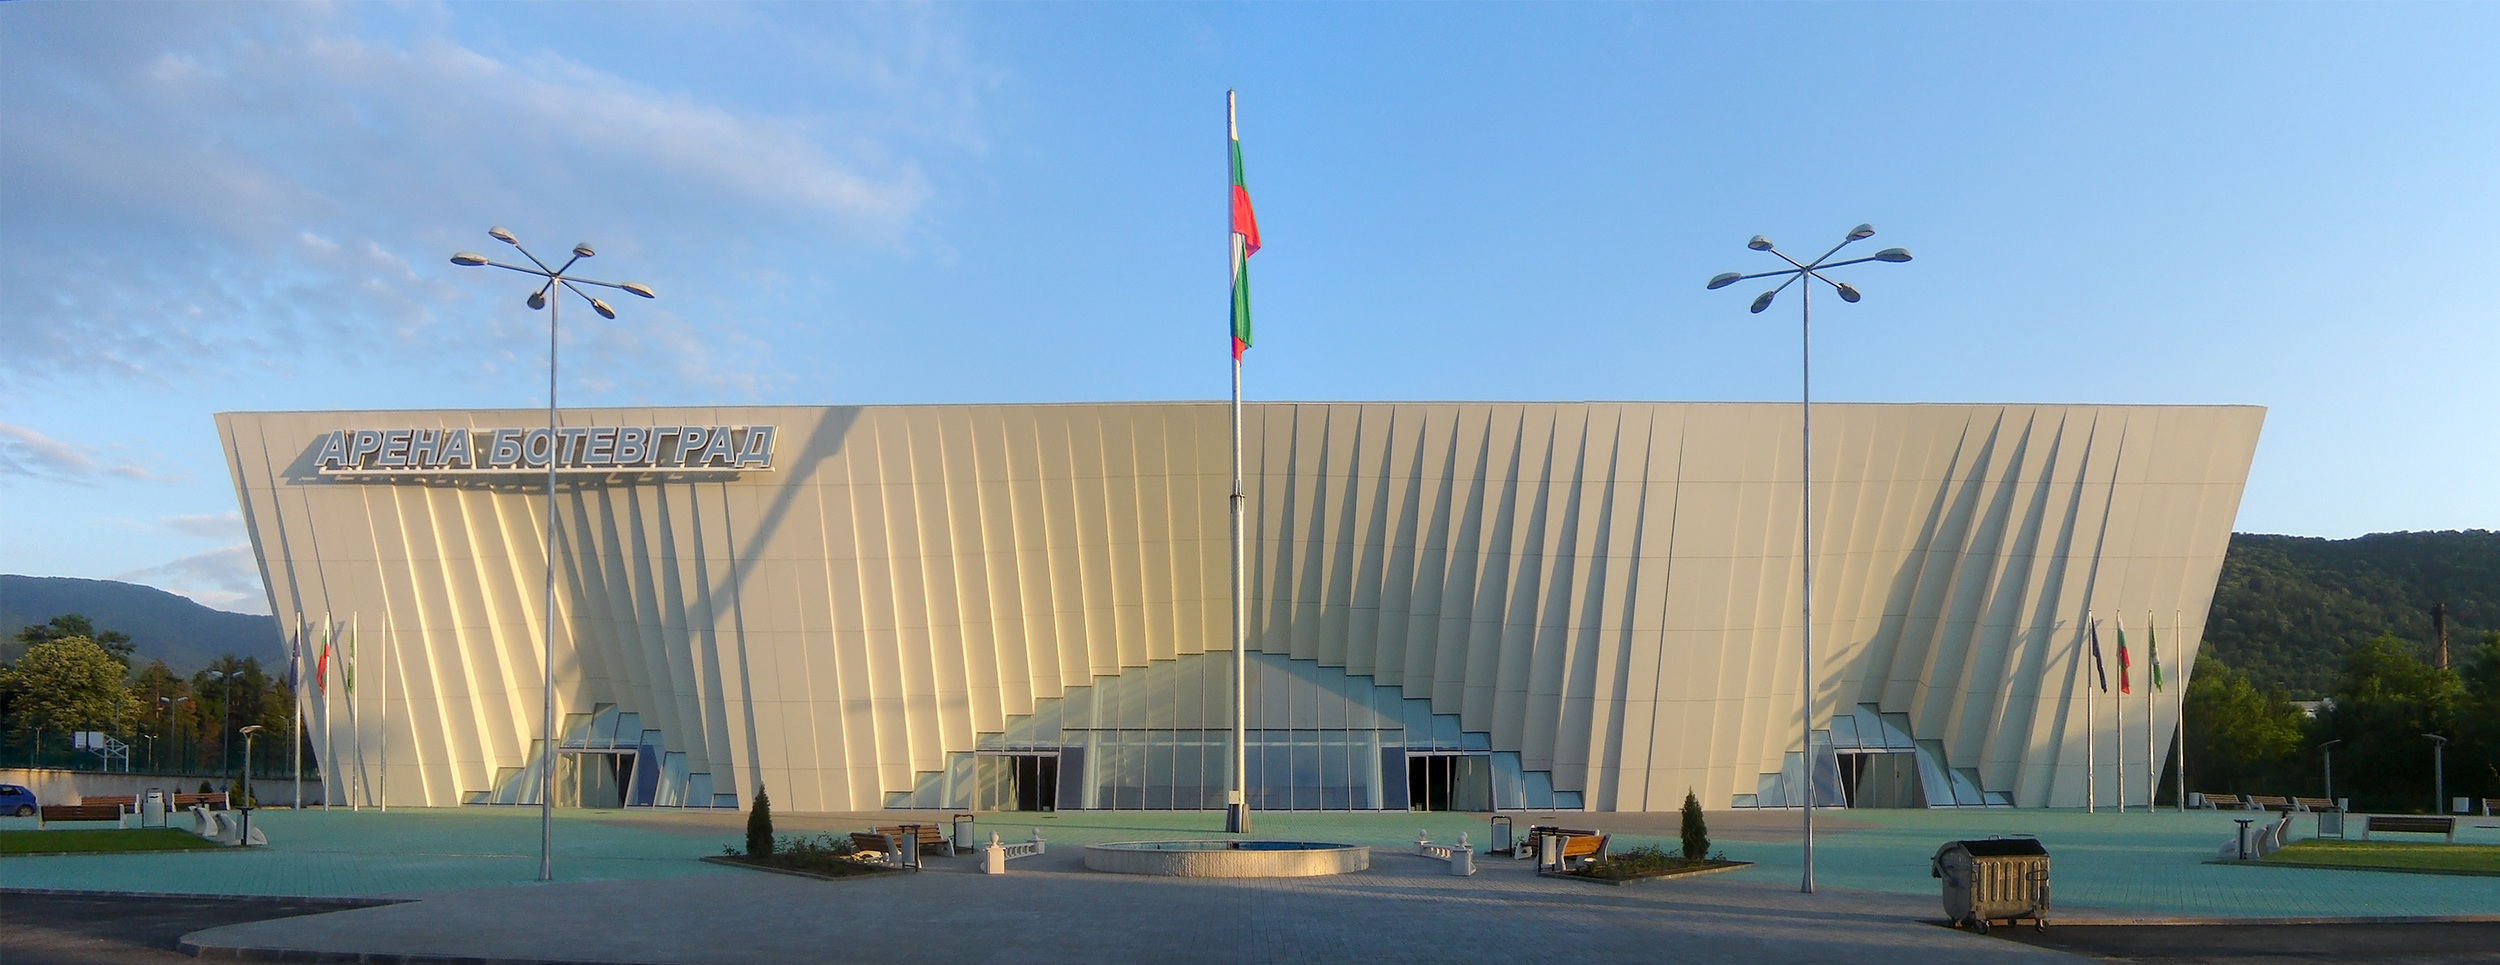 The teams will do battle in the Botevgrad Arena Sports Palace in Botevgrad, Bulgaria  Photo: Wikipedia